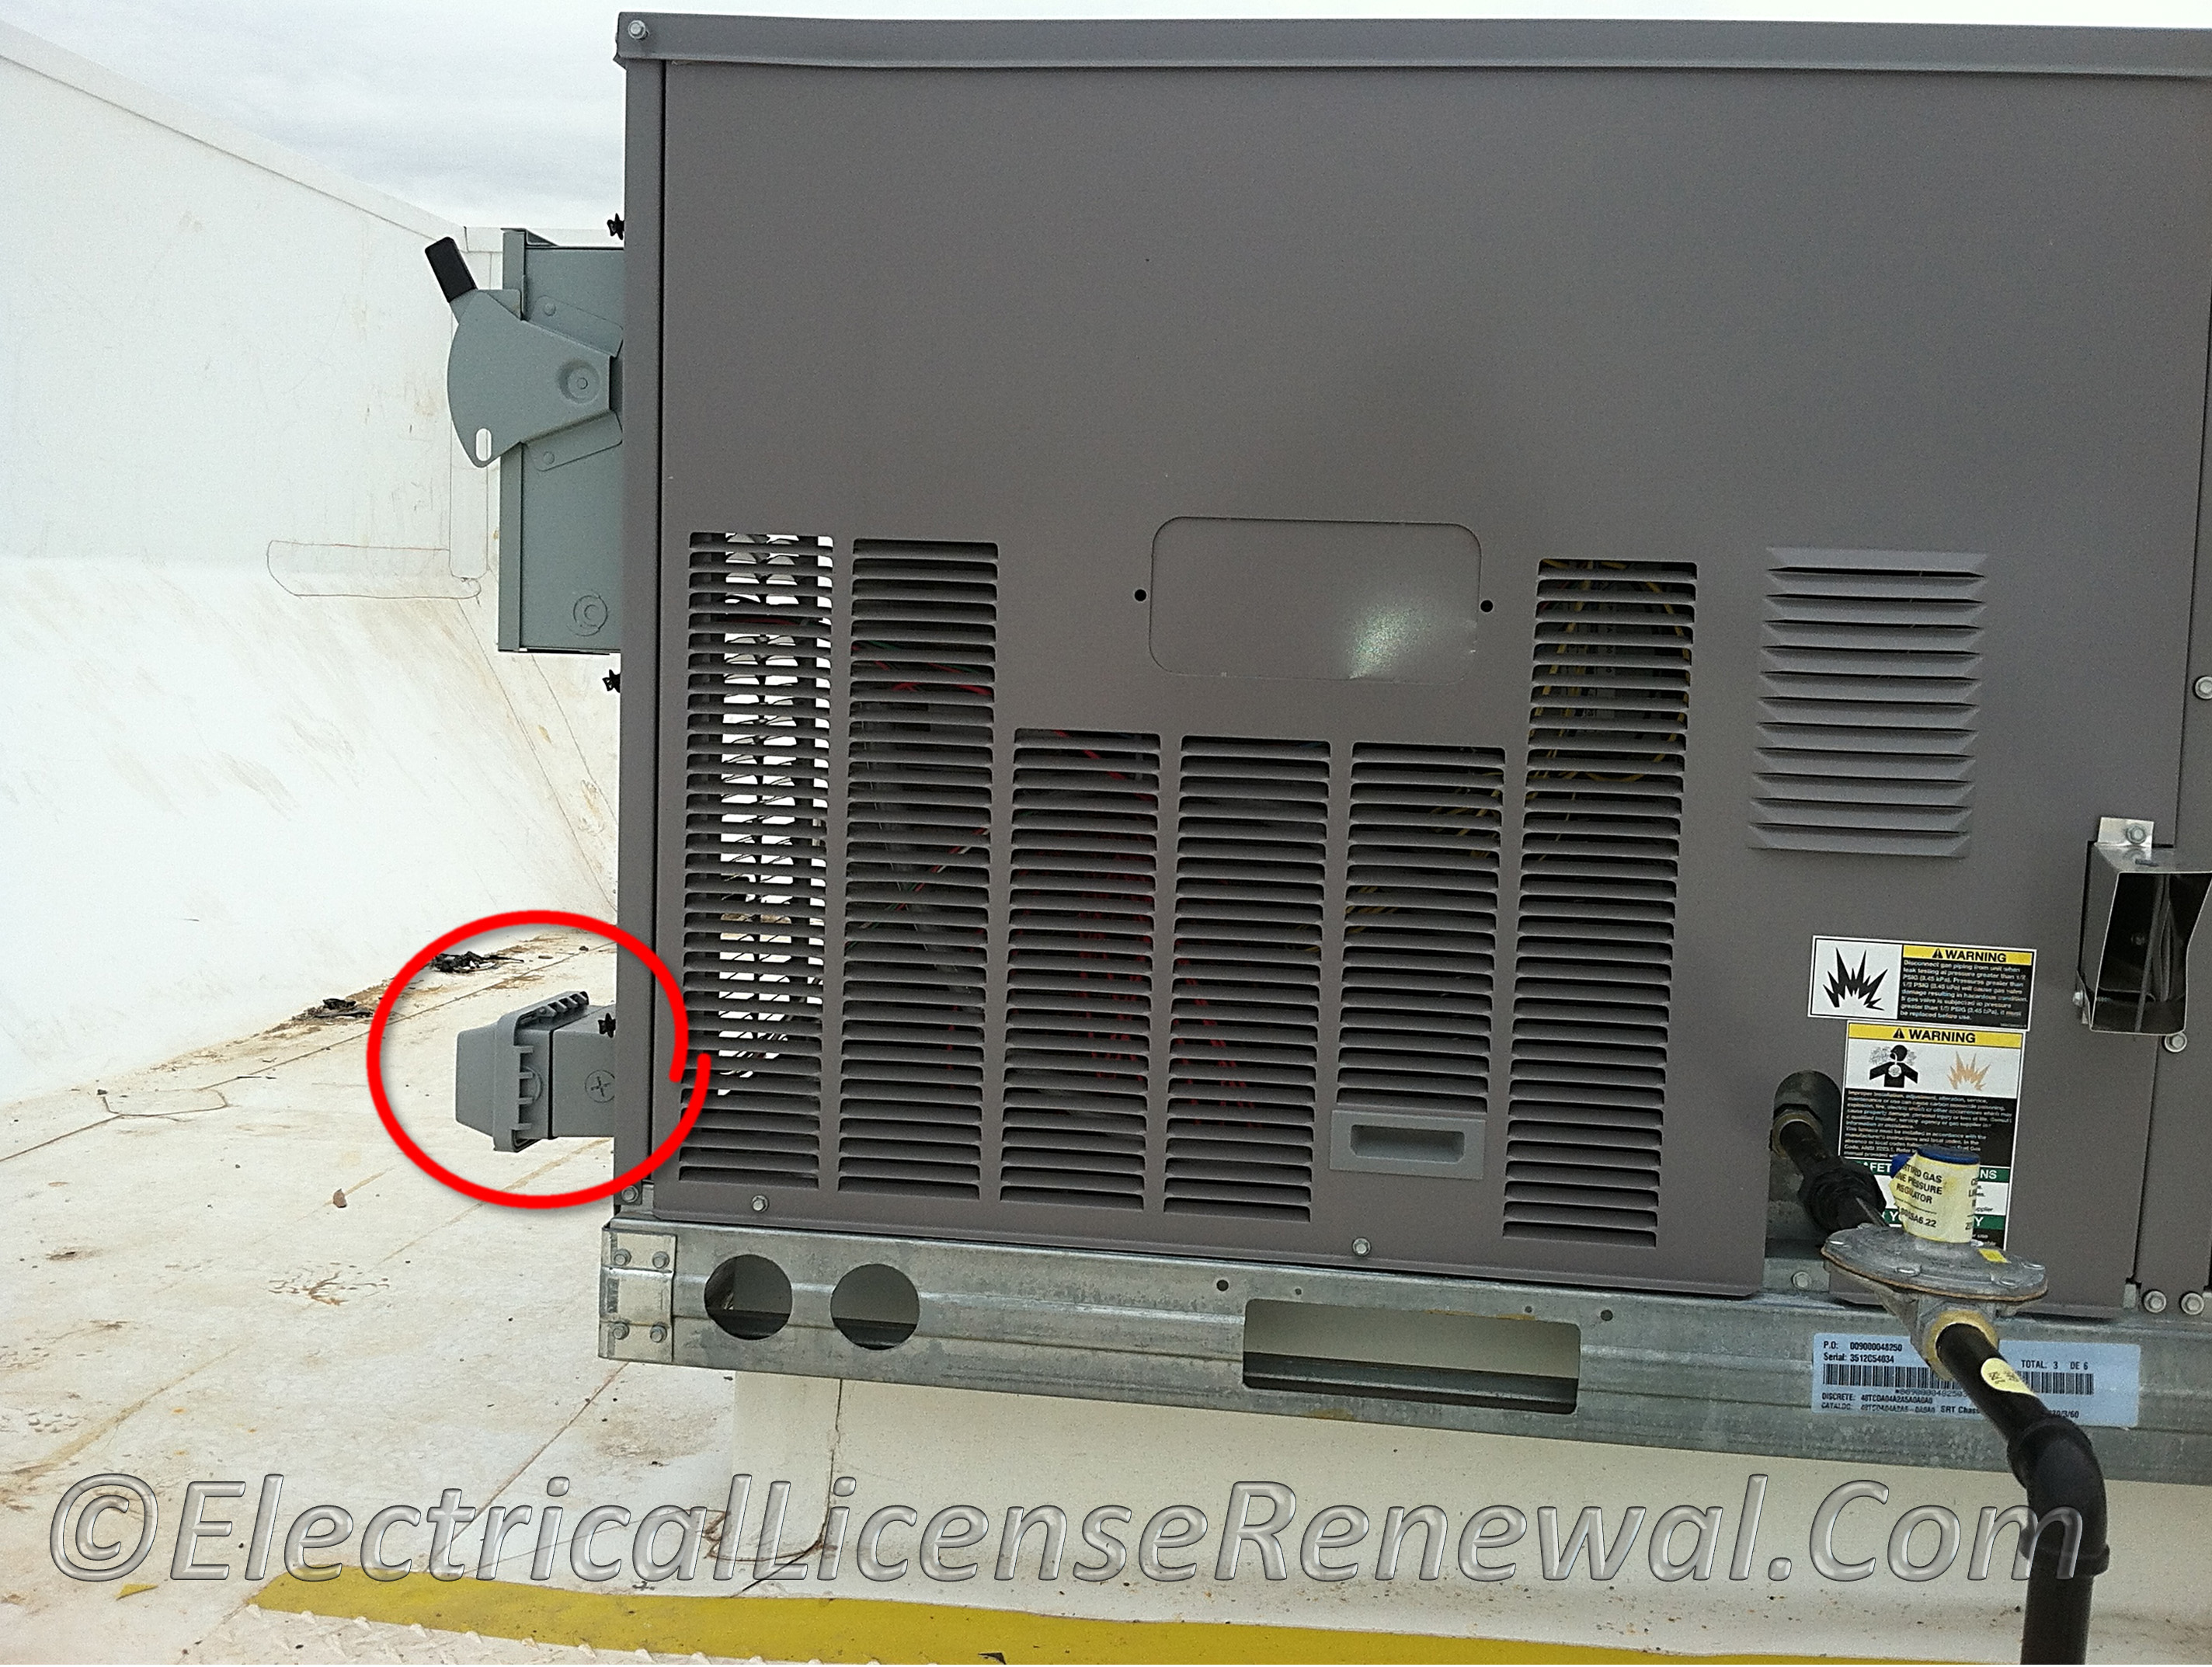 2108b Ground Fault Circuit Interrupter Protection For Personnel Wiring Of Receptacles Also With Other Than Dwelling Units